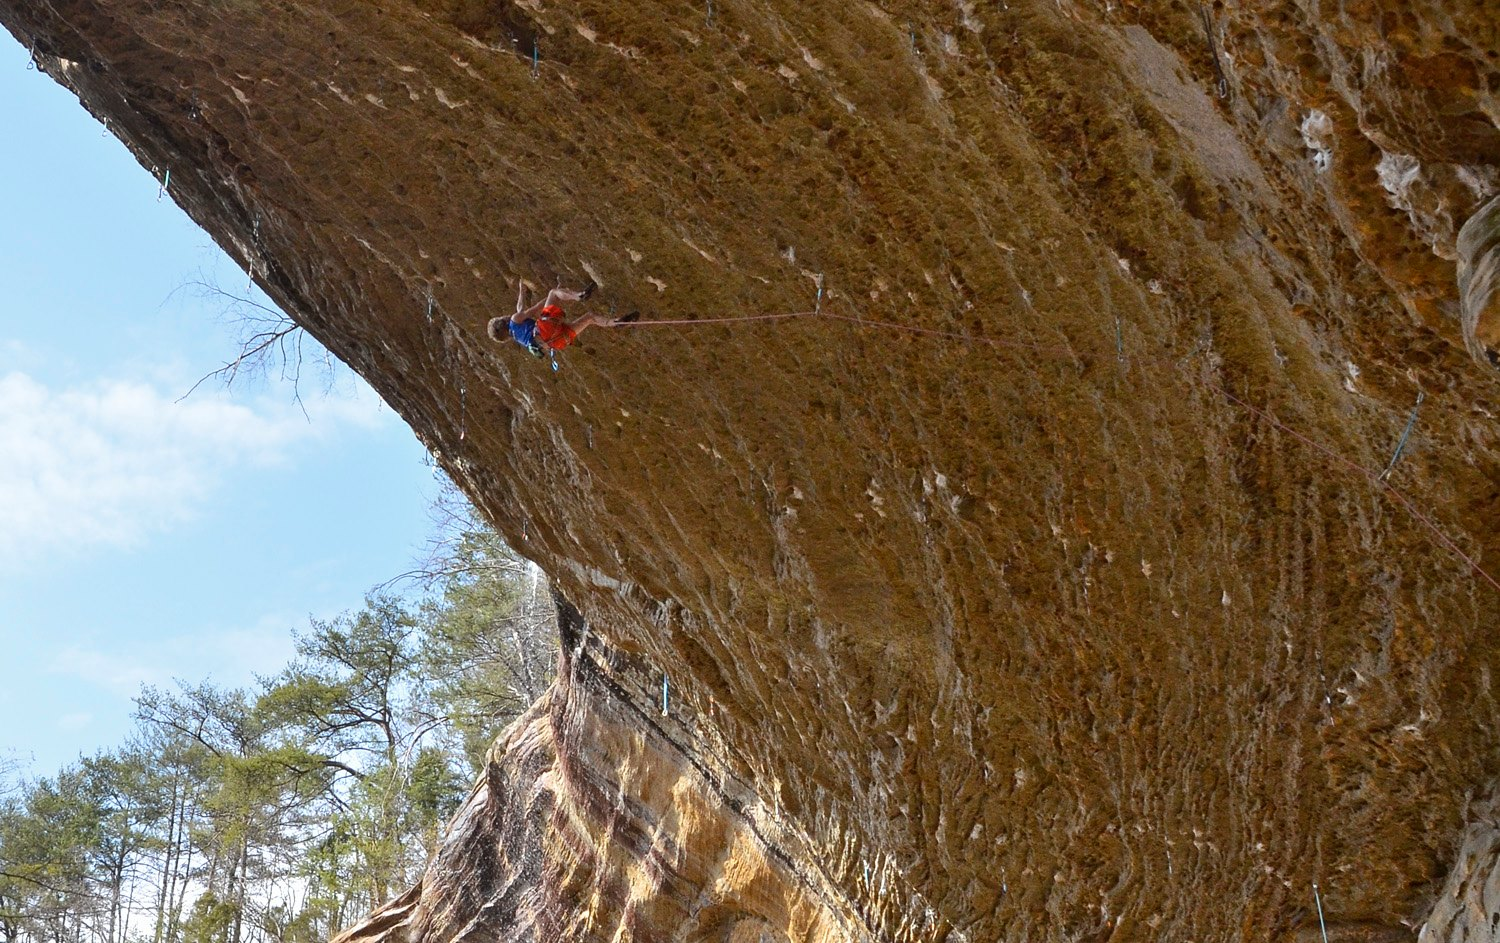 Climbing Cameron Horst climbing The Madness (13c) on of the longest, steepest sport climbs in America. Red River Gorge, KY.